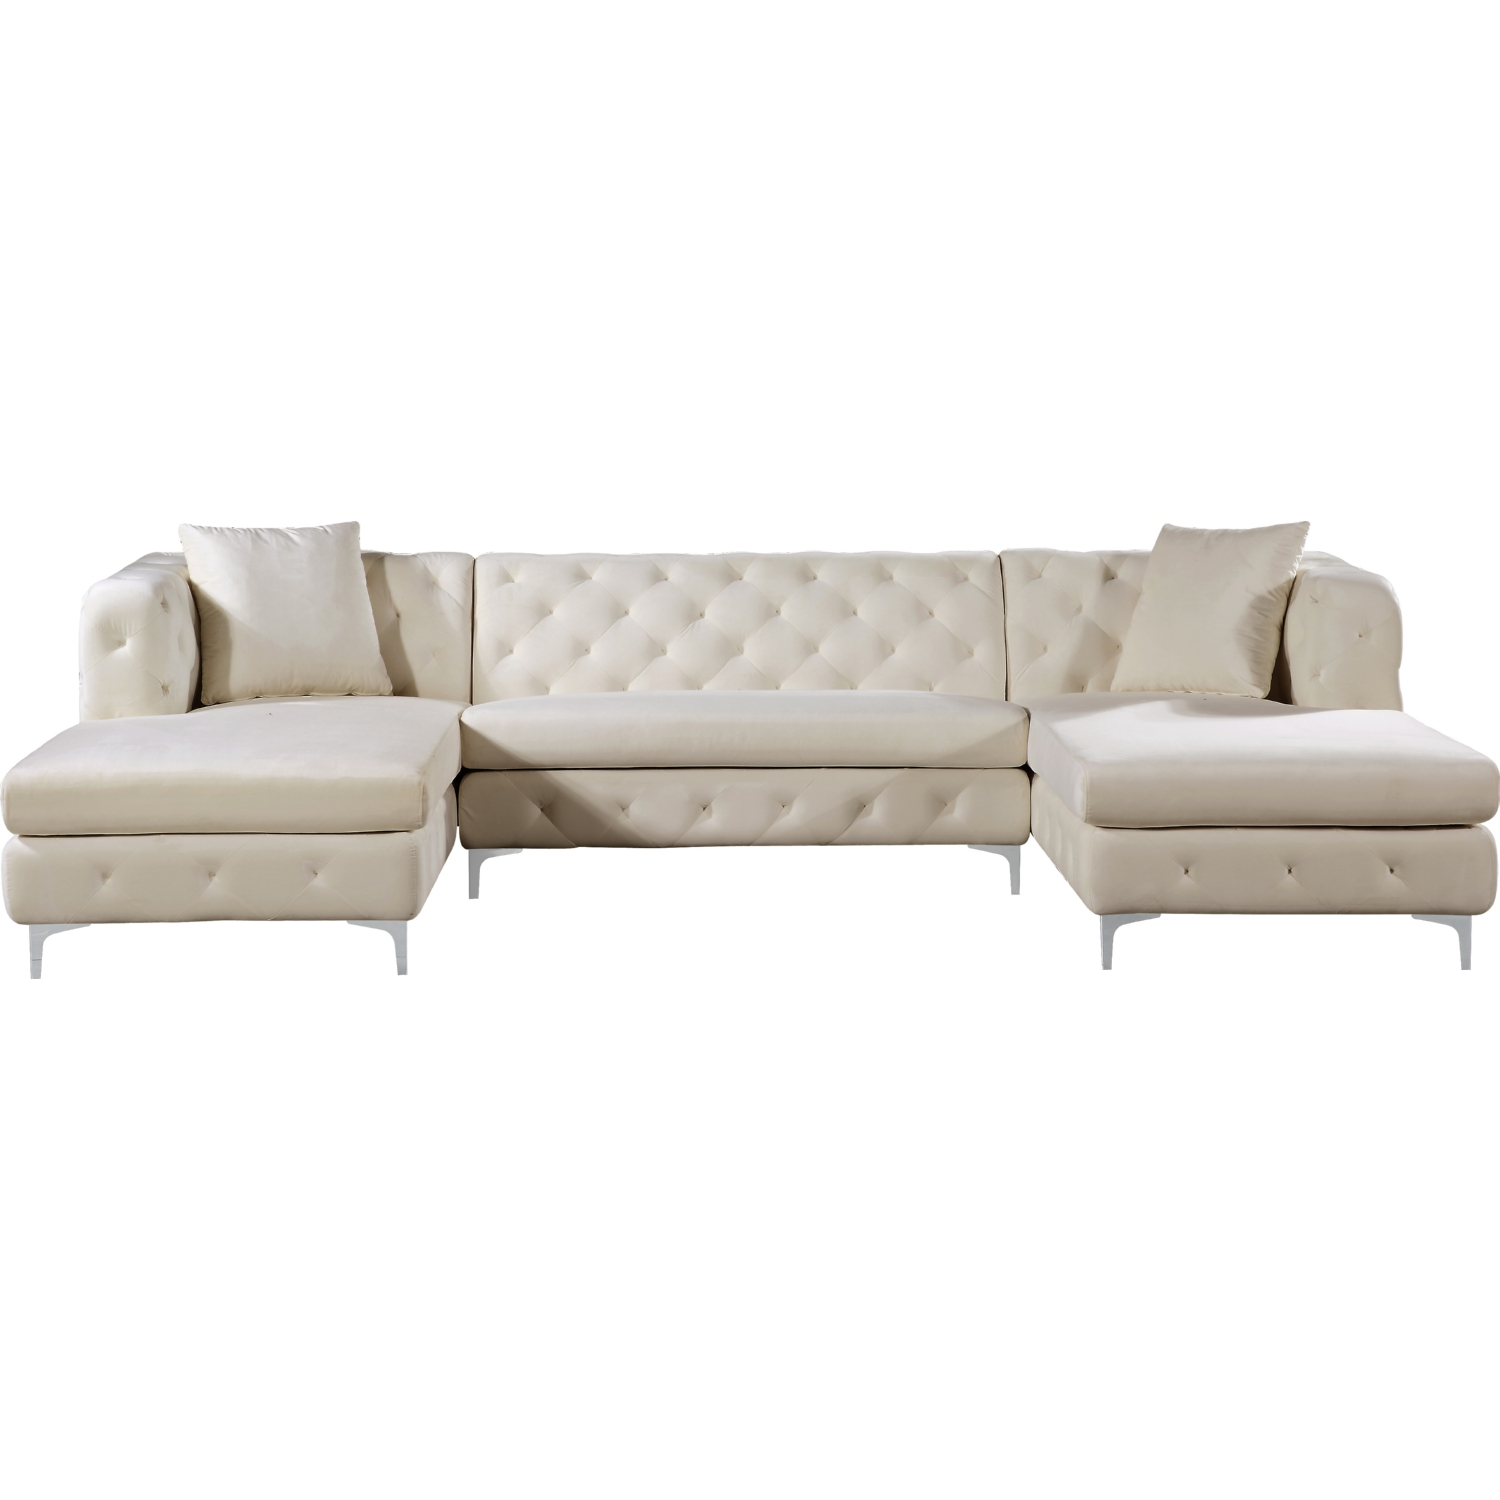 Gail 3 Piece Double Chaise Sectional In Tufted Cream Velvet